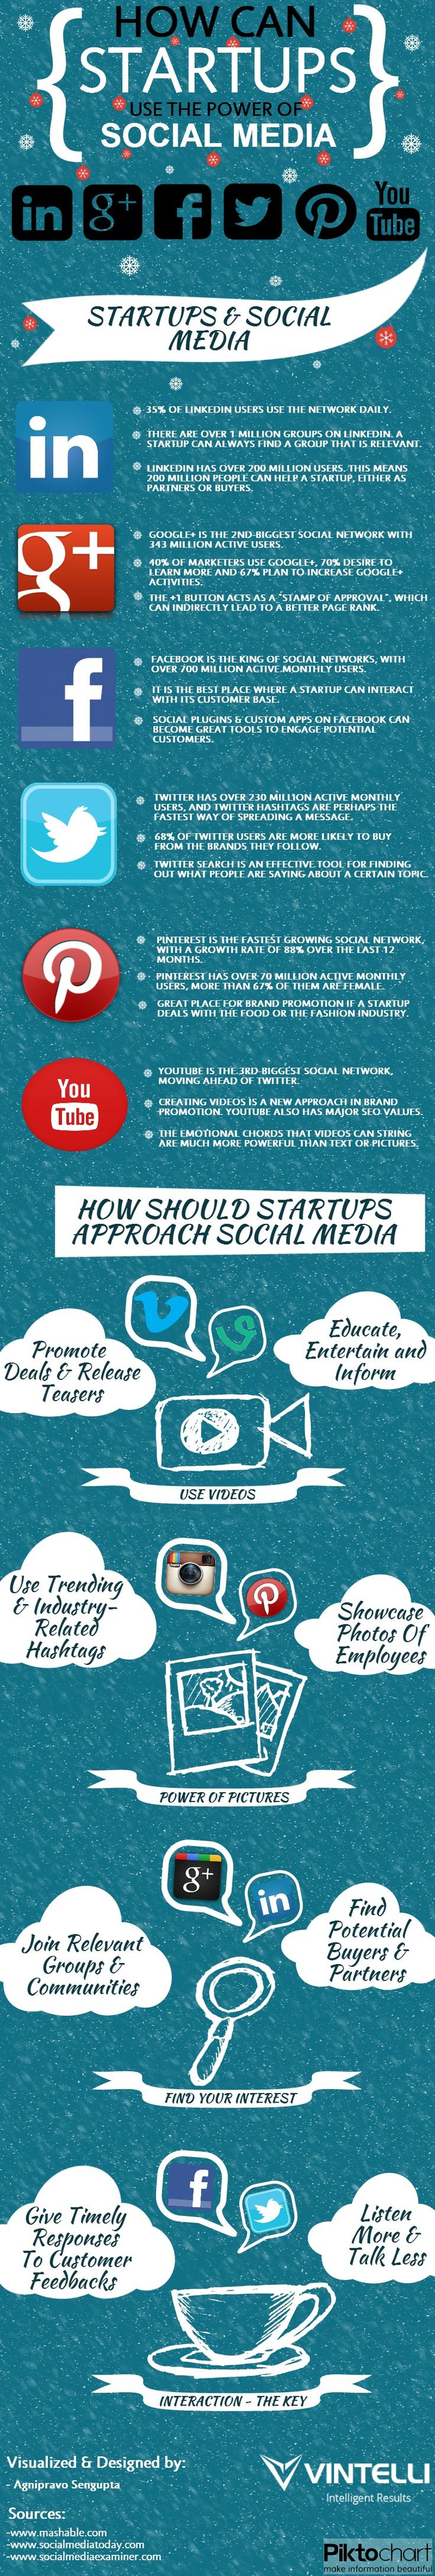 How Startups Can Use The Power Of Social Media #Infographic #socialmedia #entrepreneur